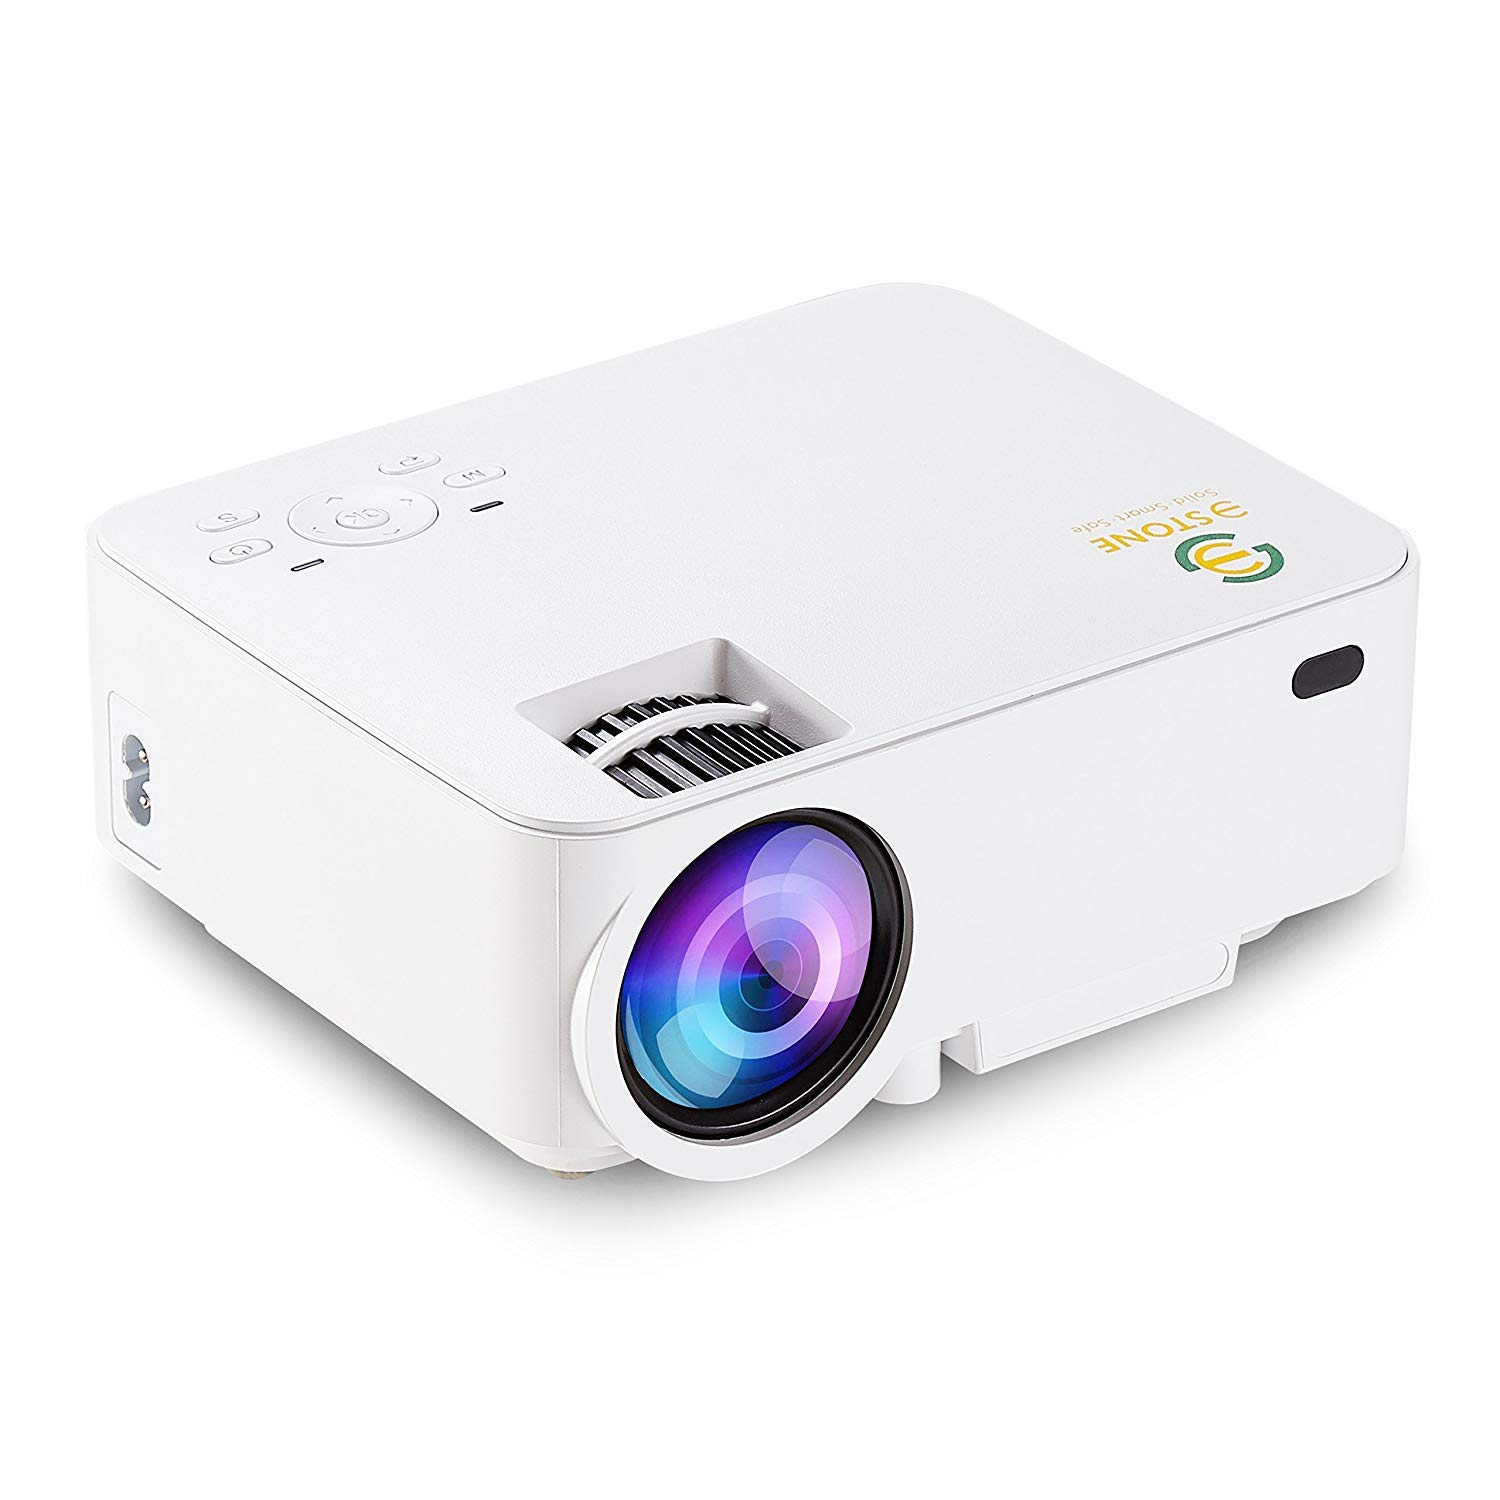 3 Stone 2018 Upgrade 1080p 1500 Lumens LCD Mini Projector, Home Theater Video Projector for TV Laptop SD Android TV Box Support HDMI USB SD AV VGA TV Interface